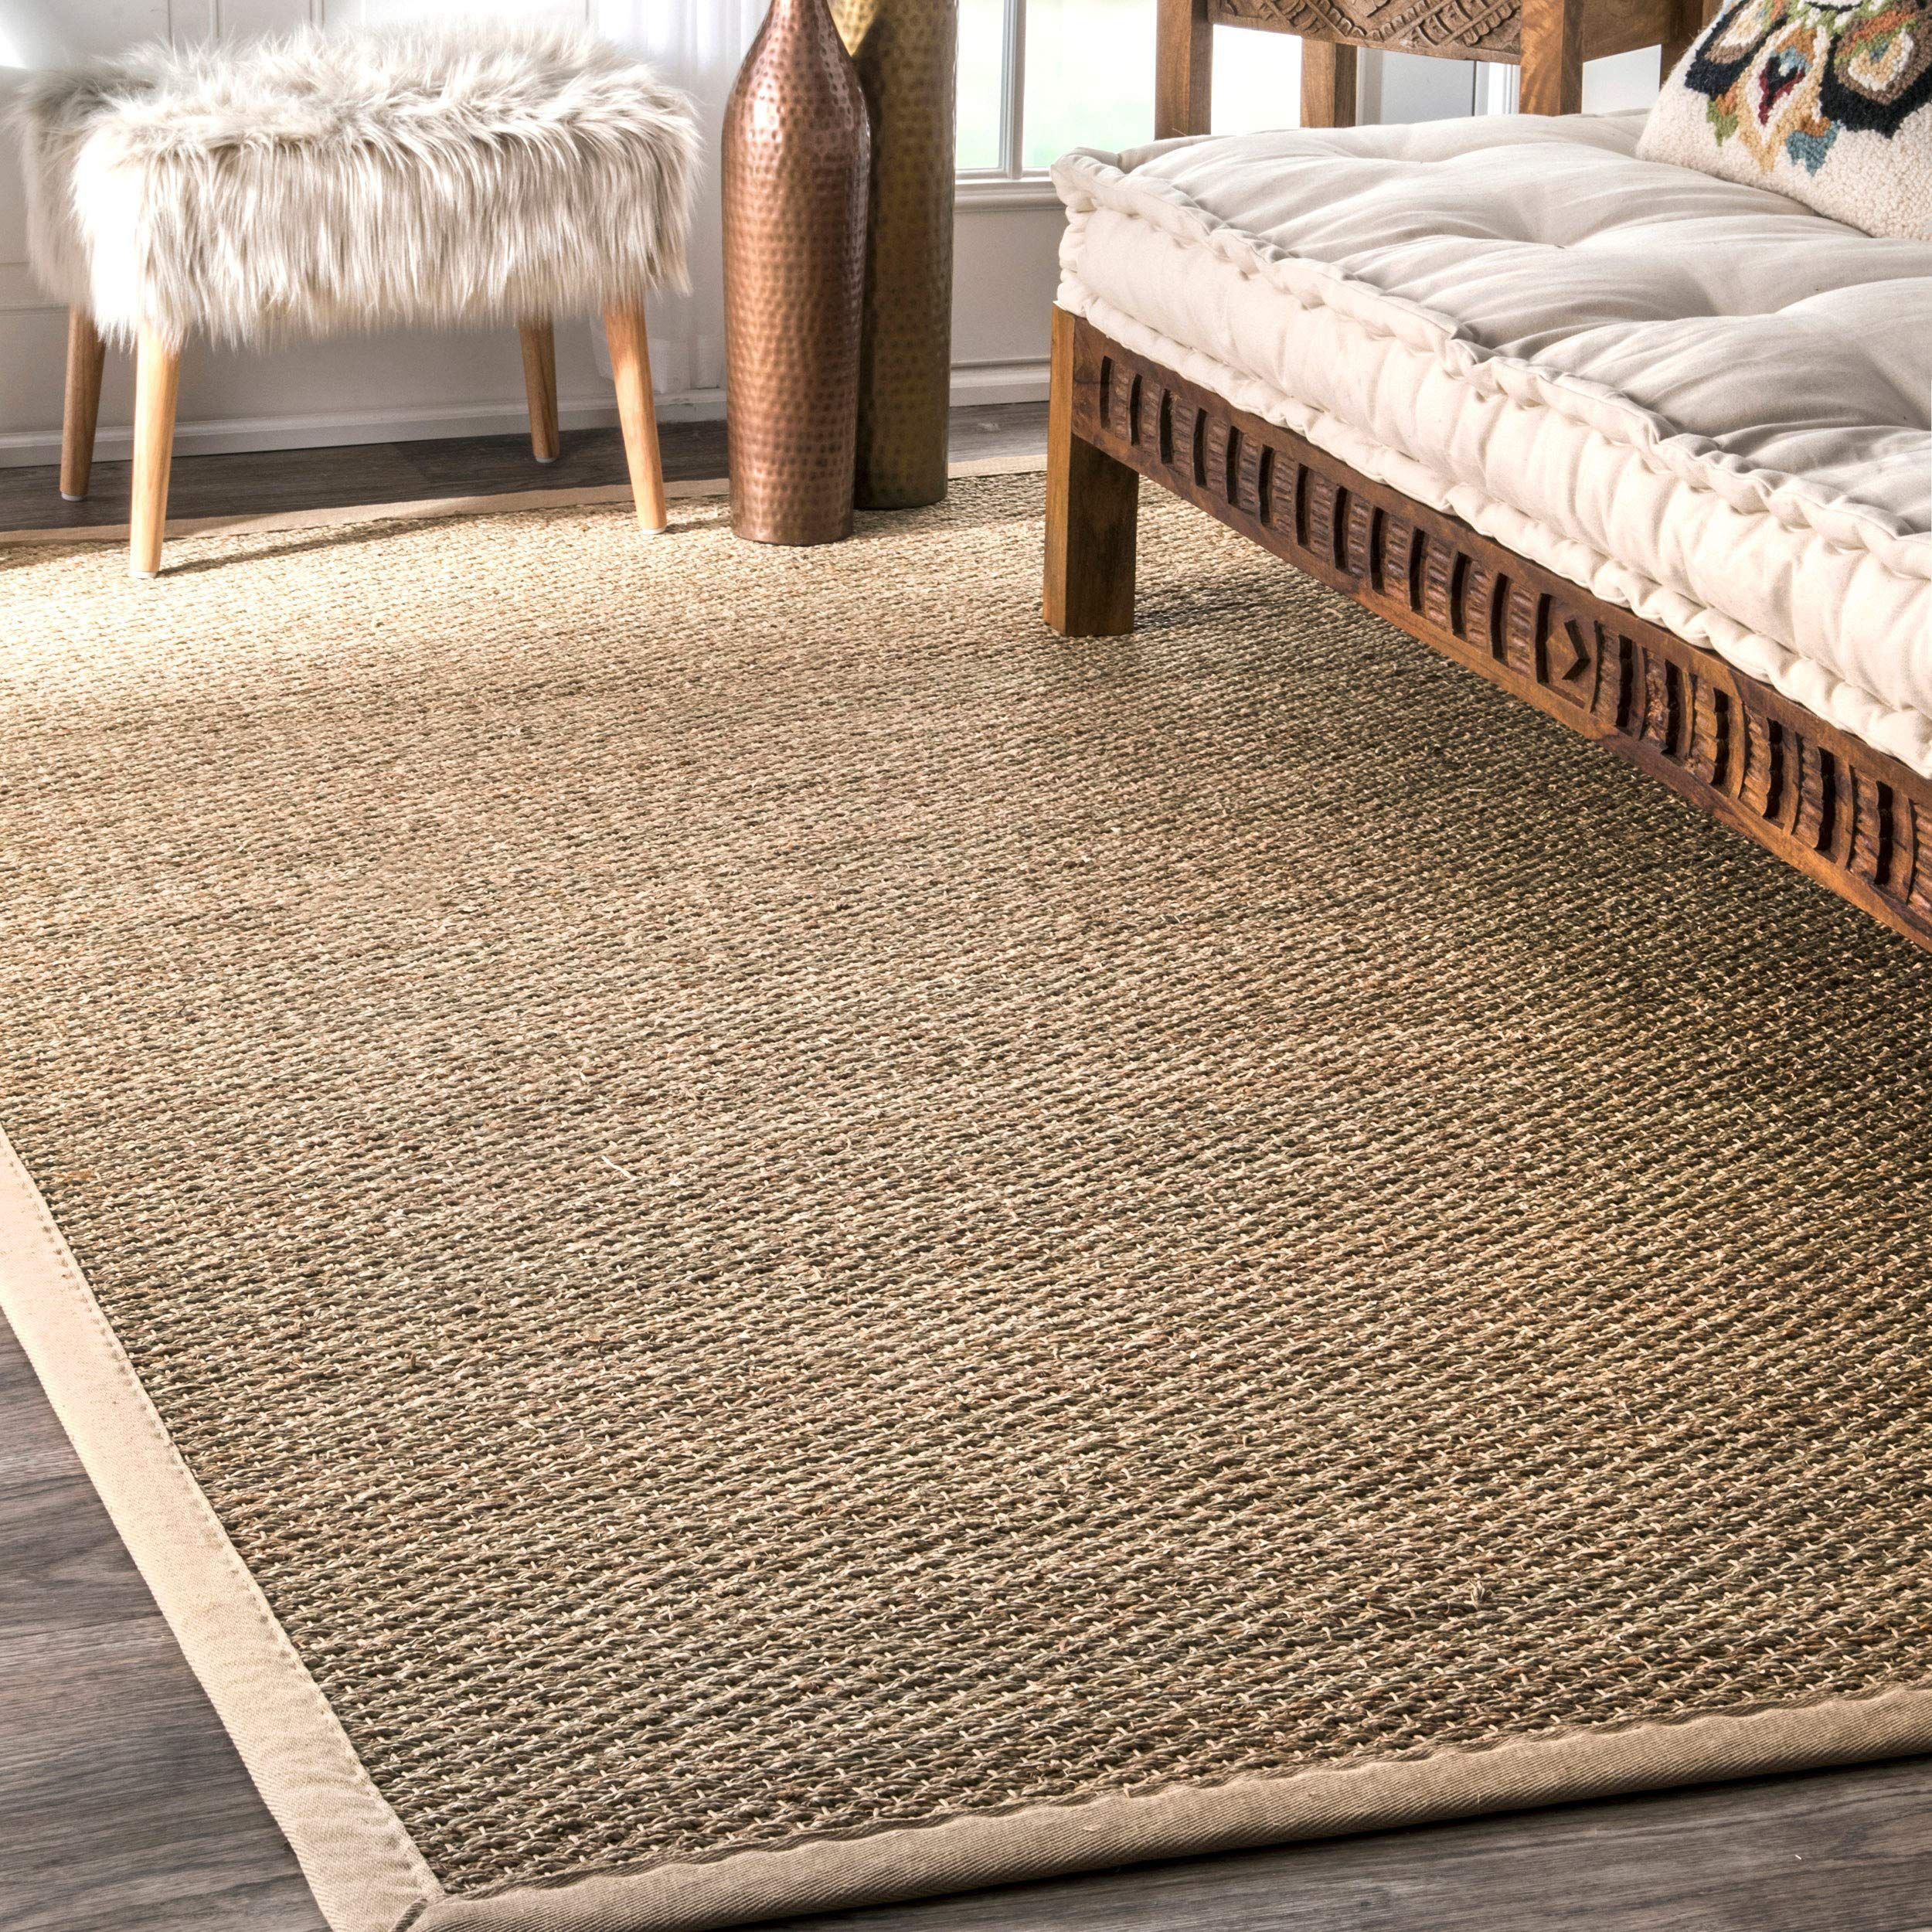 Nuloom Elijah Seagrass Natural Area Rug 6 X 9 Beige In 2020 Area Rugs Seagrass Rug Natural Area Rugs